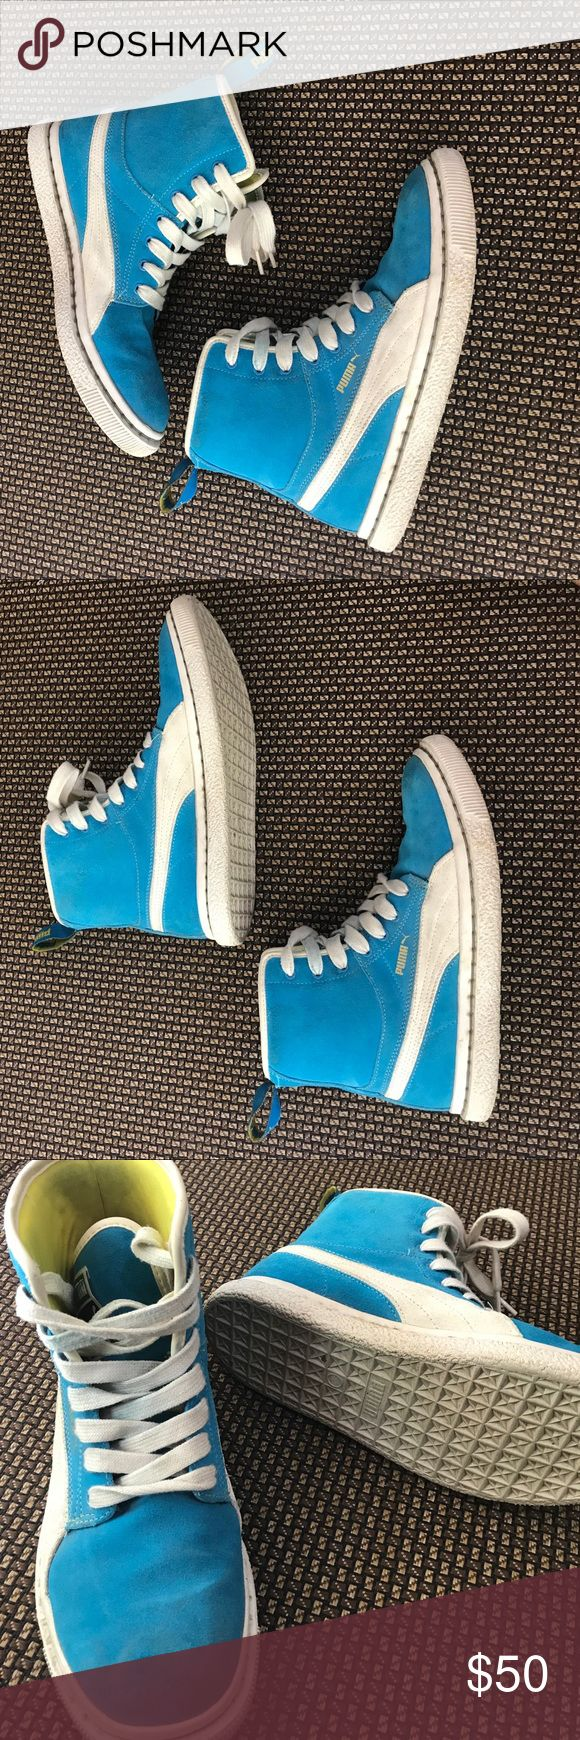 Women PUMA Blue Suede Hi-Tops Worn a few times. These are big hi tops for ladies size 8. Light baby blue suede color with yellow interior color. Very comfortable and outgoing shoes. Not worn out from the bottom at all. Pretty sturdy material. Puma Shoes Sneakers